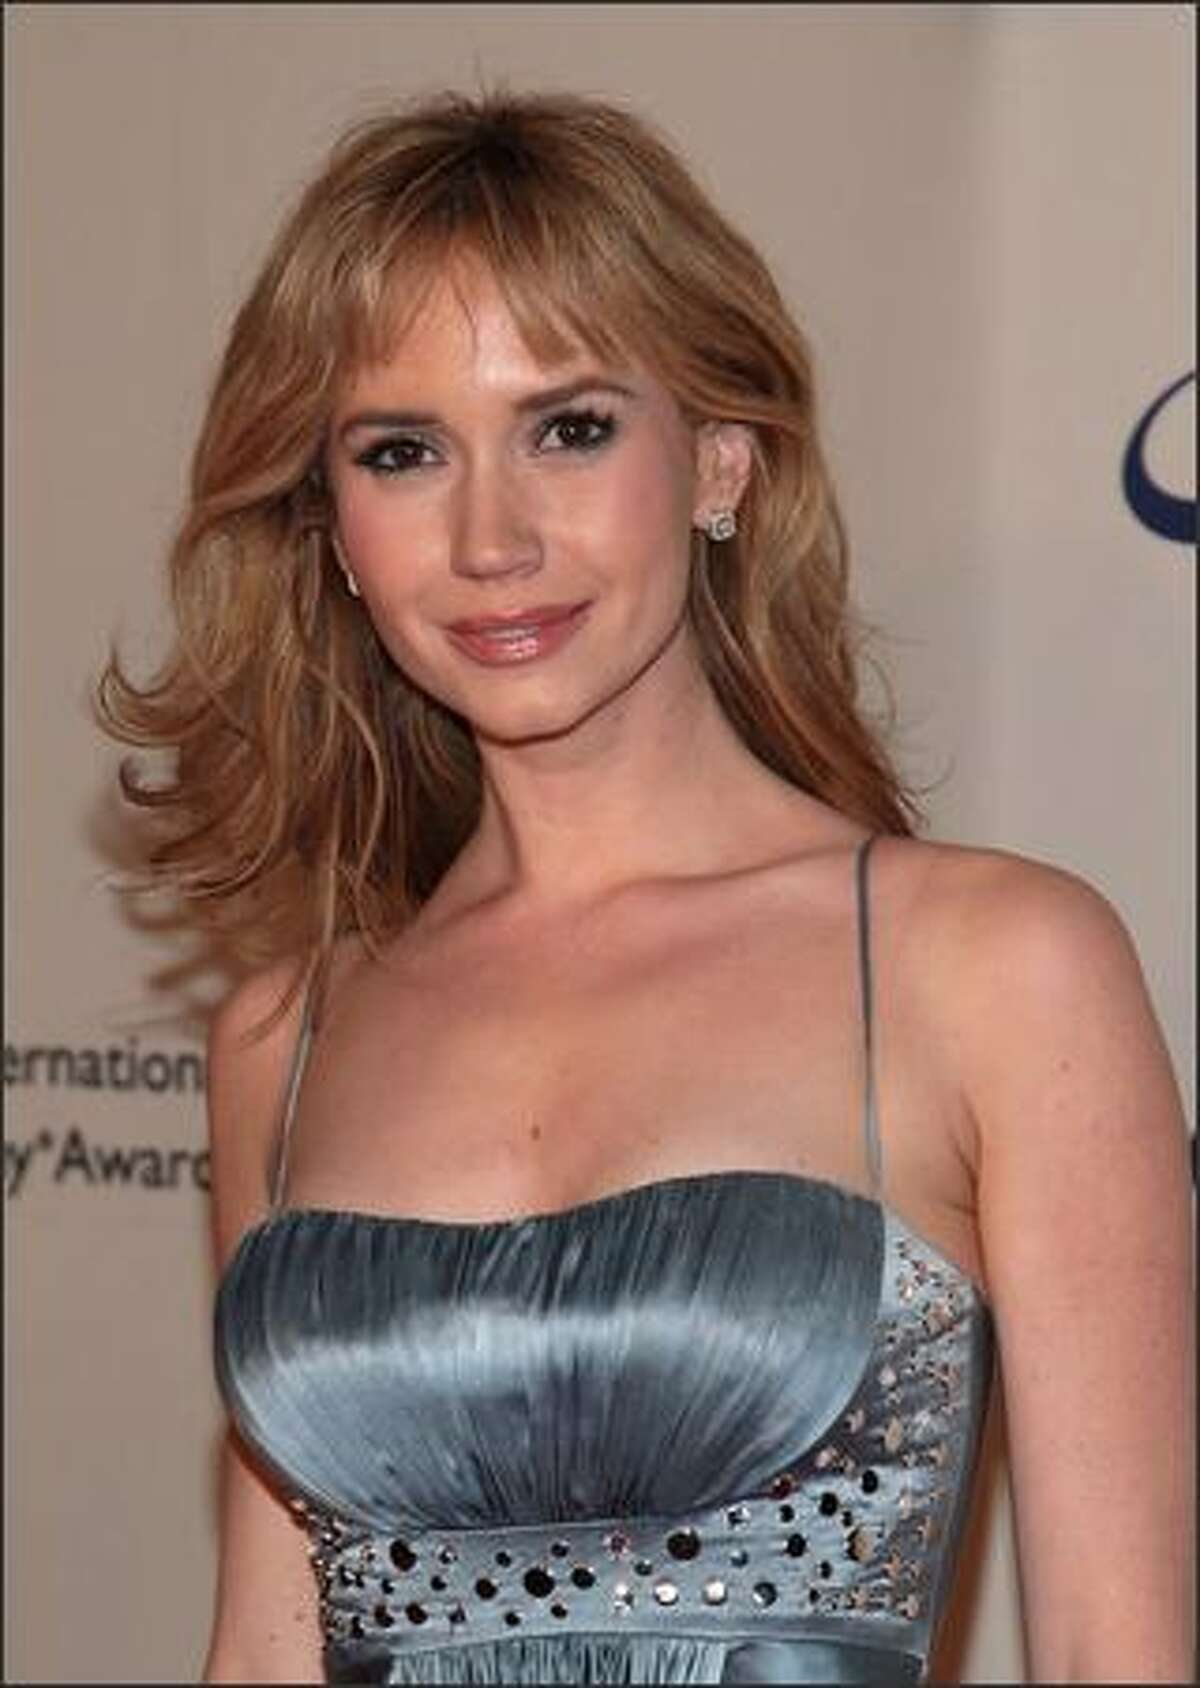 Actress Ashley Jones attends the 35th International Emmy Awards Gala at the New York Hilton on Monday in New York City.